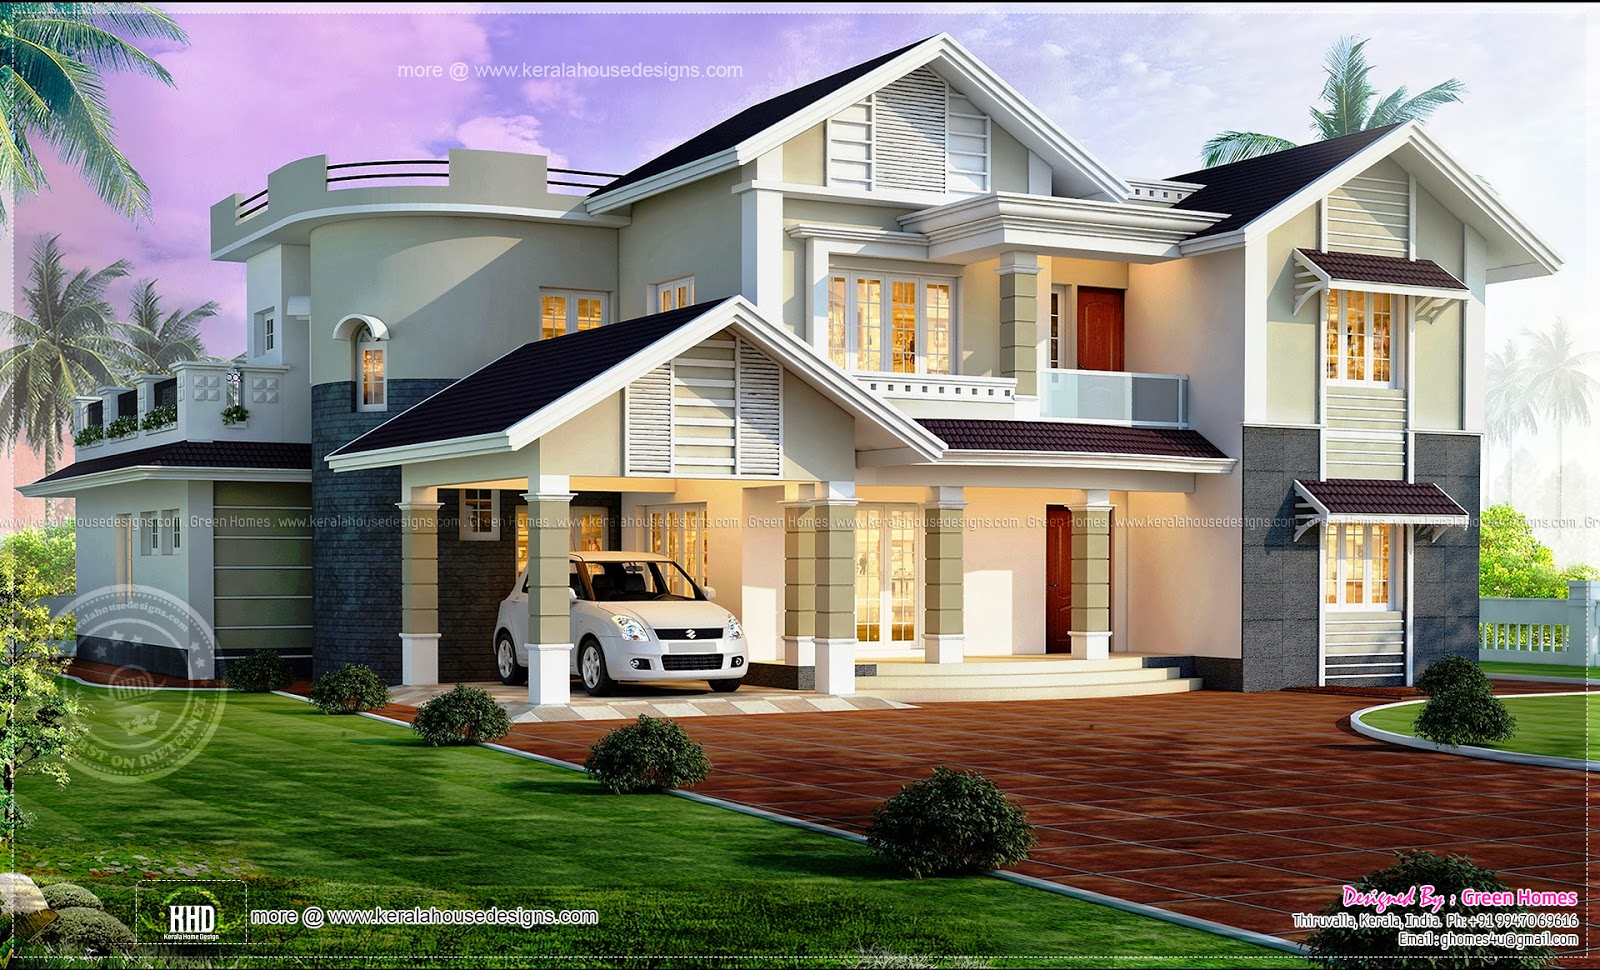 476677941780687200 on beautiful 4 bedroom villa exterior